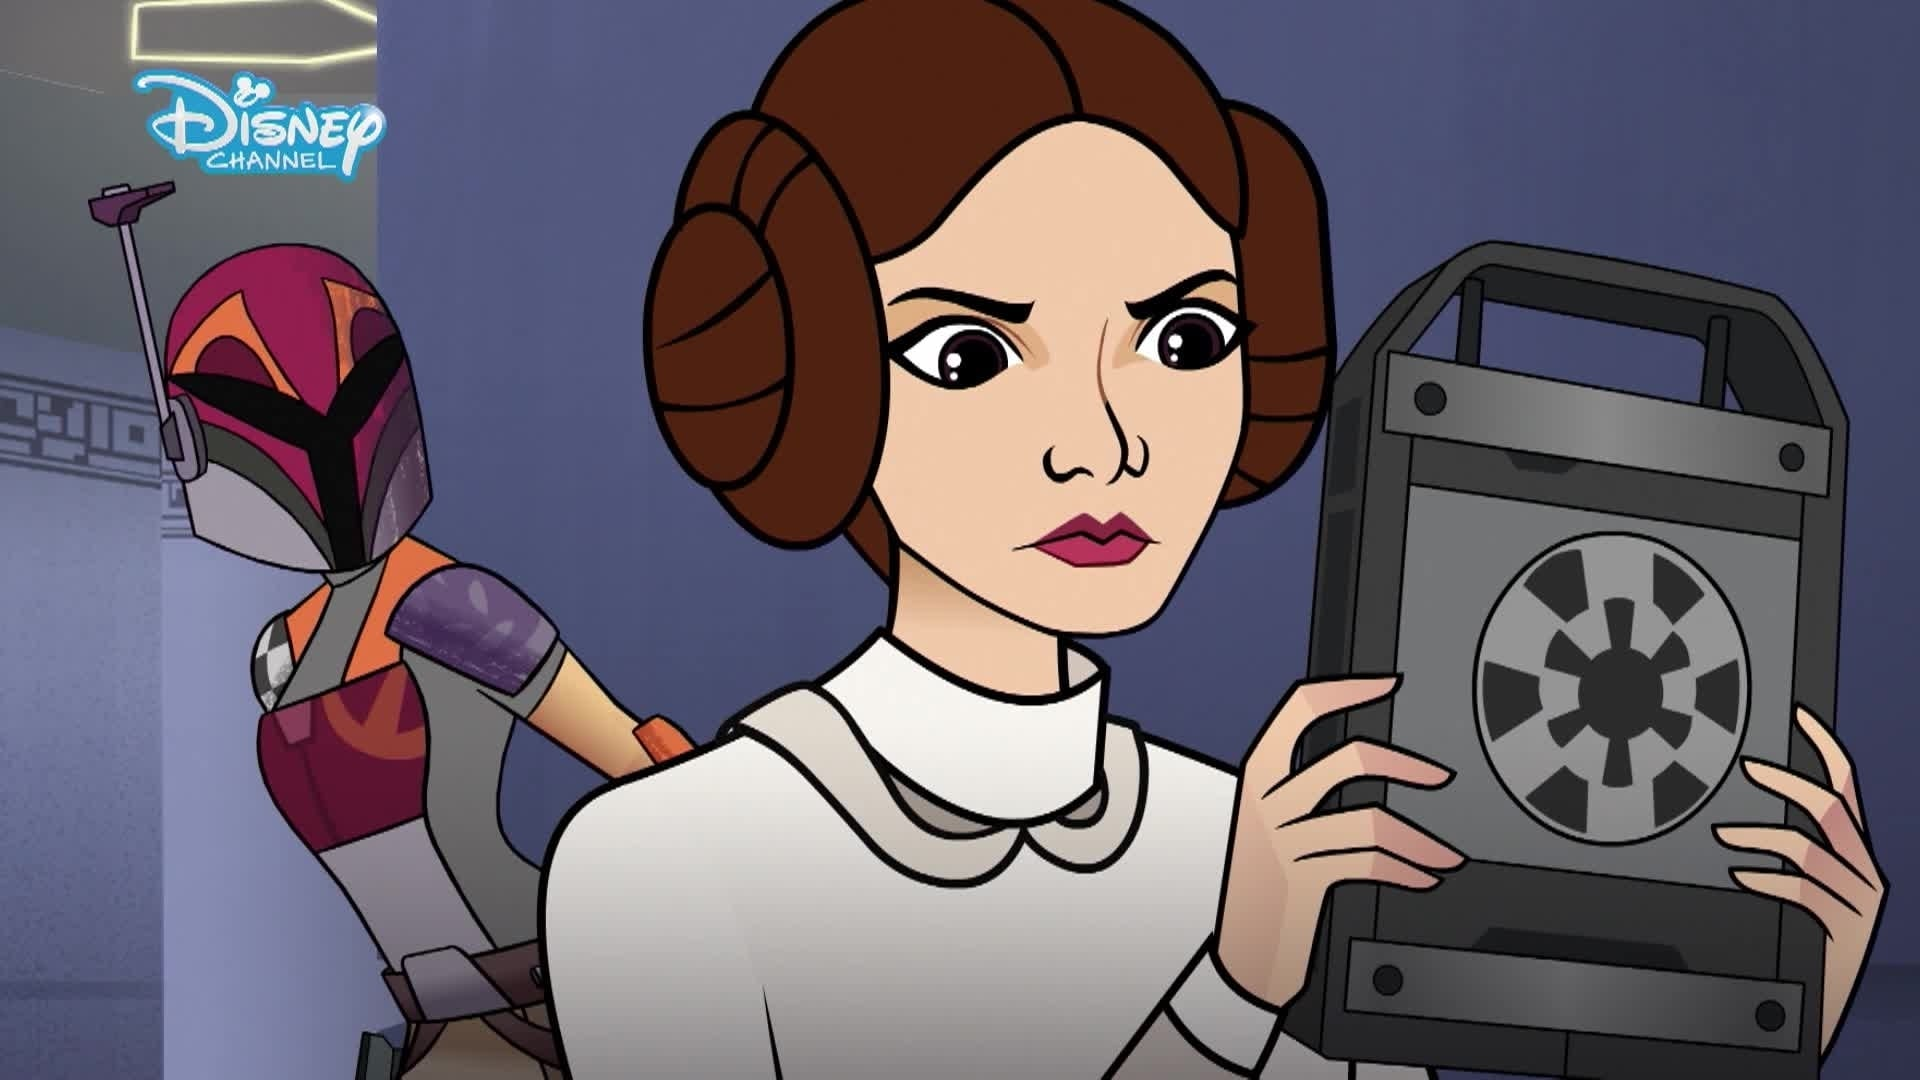 Star Wars Forces of Destiny: Recompensa Problemática